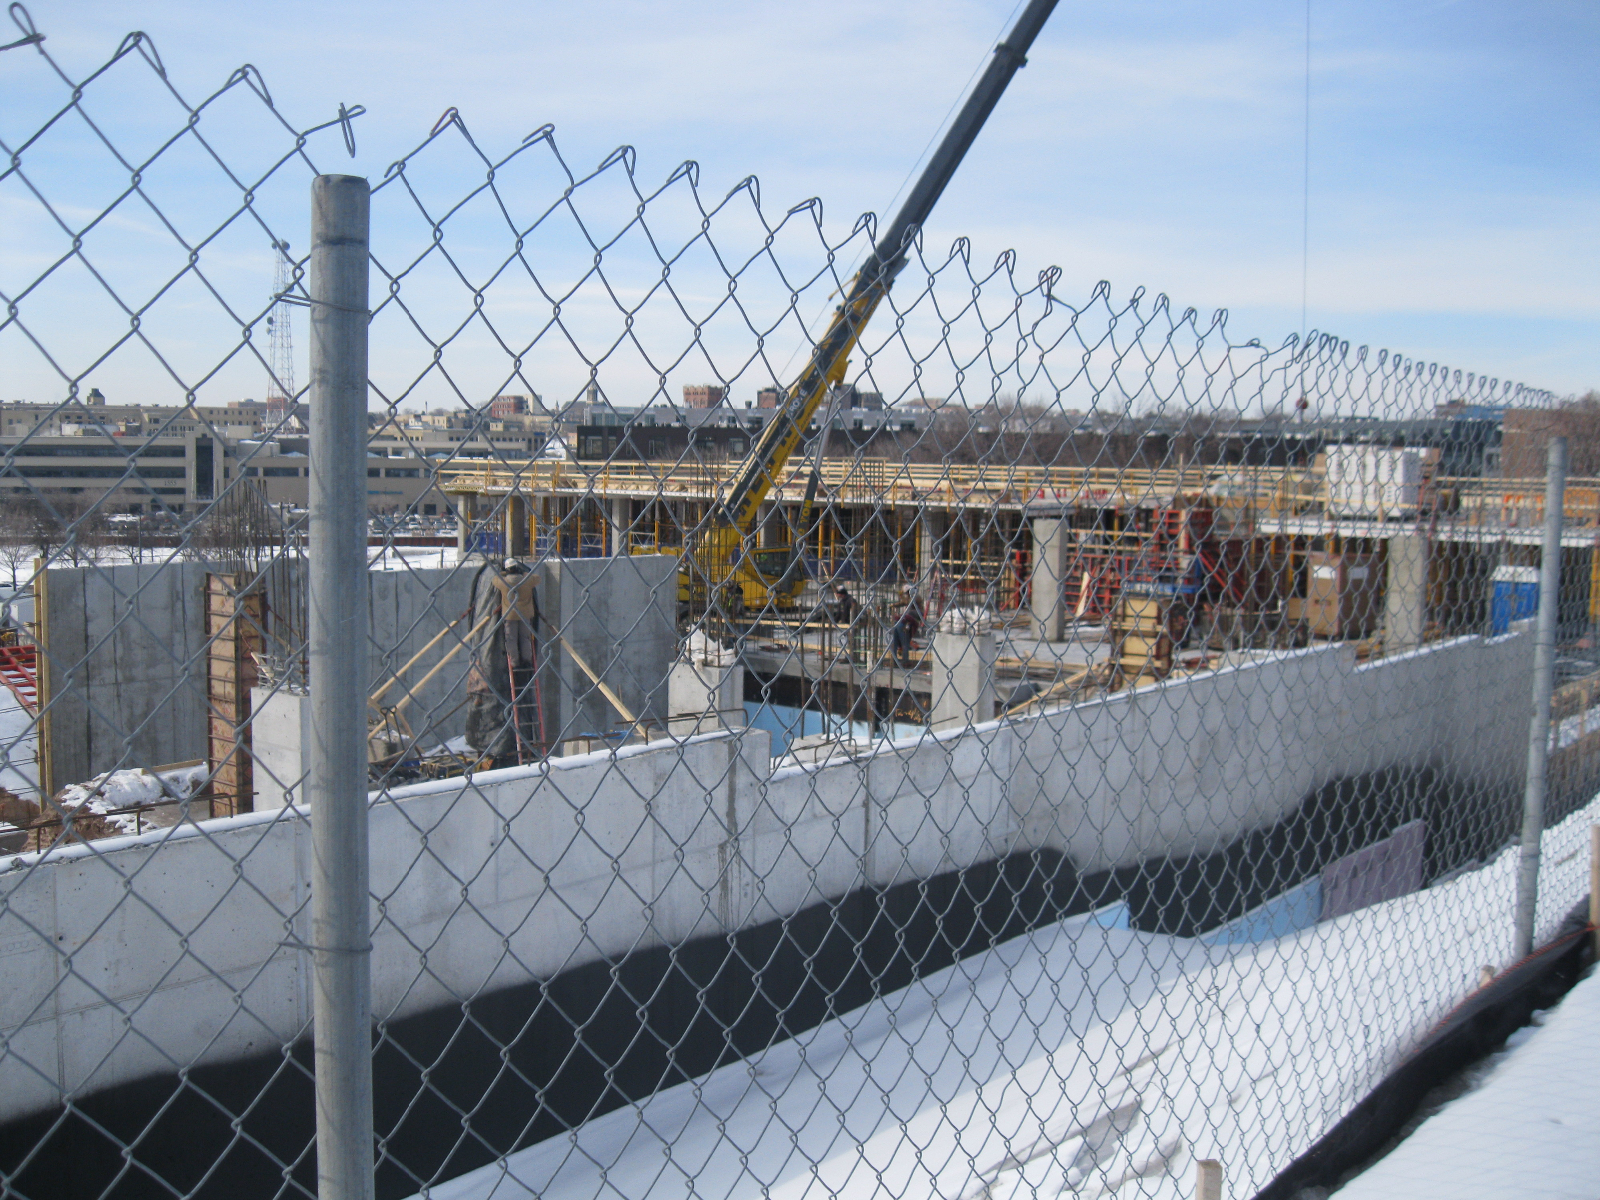 Looking through the construction fence.